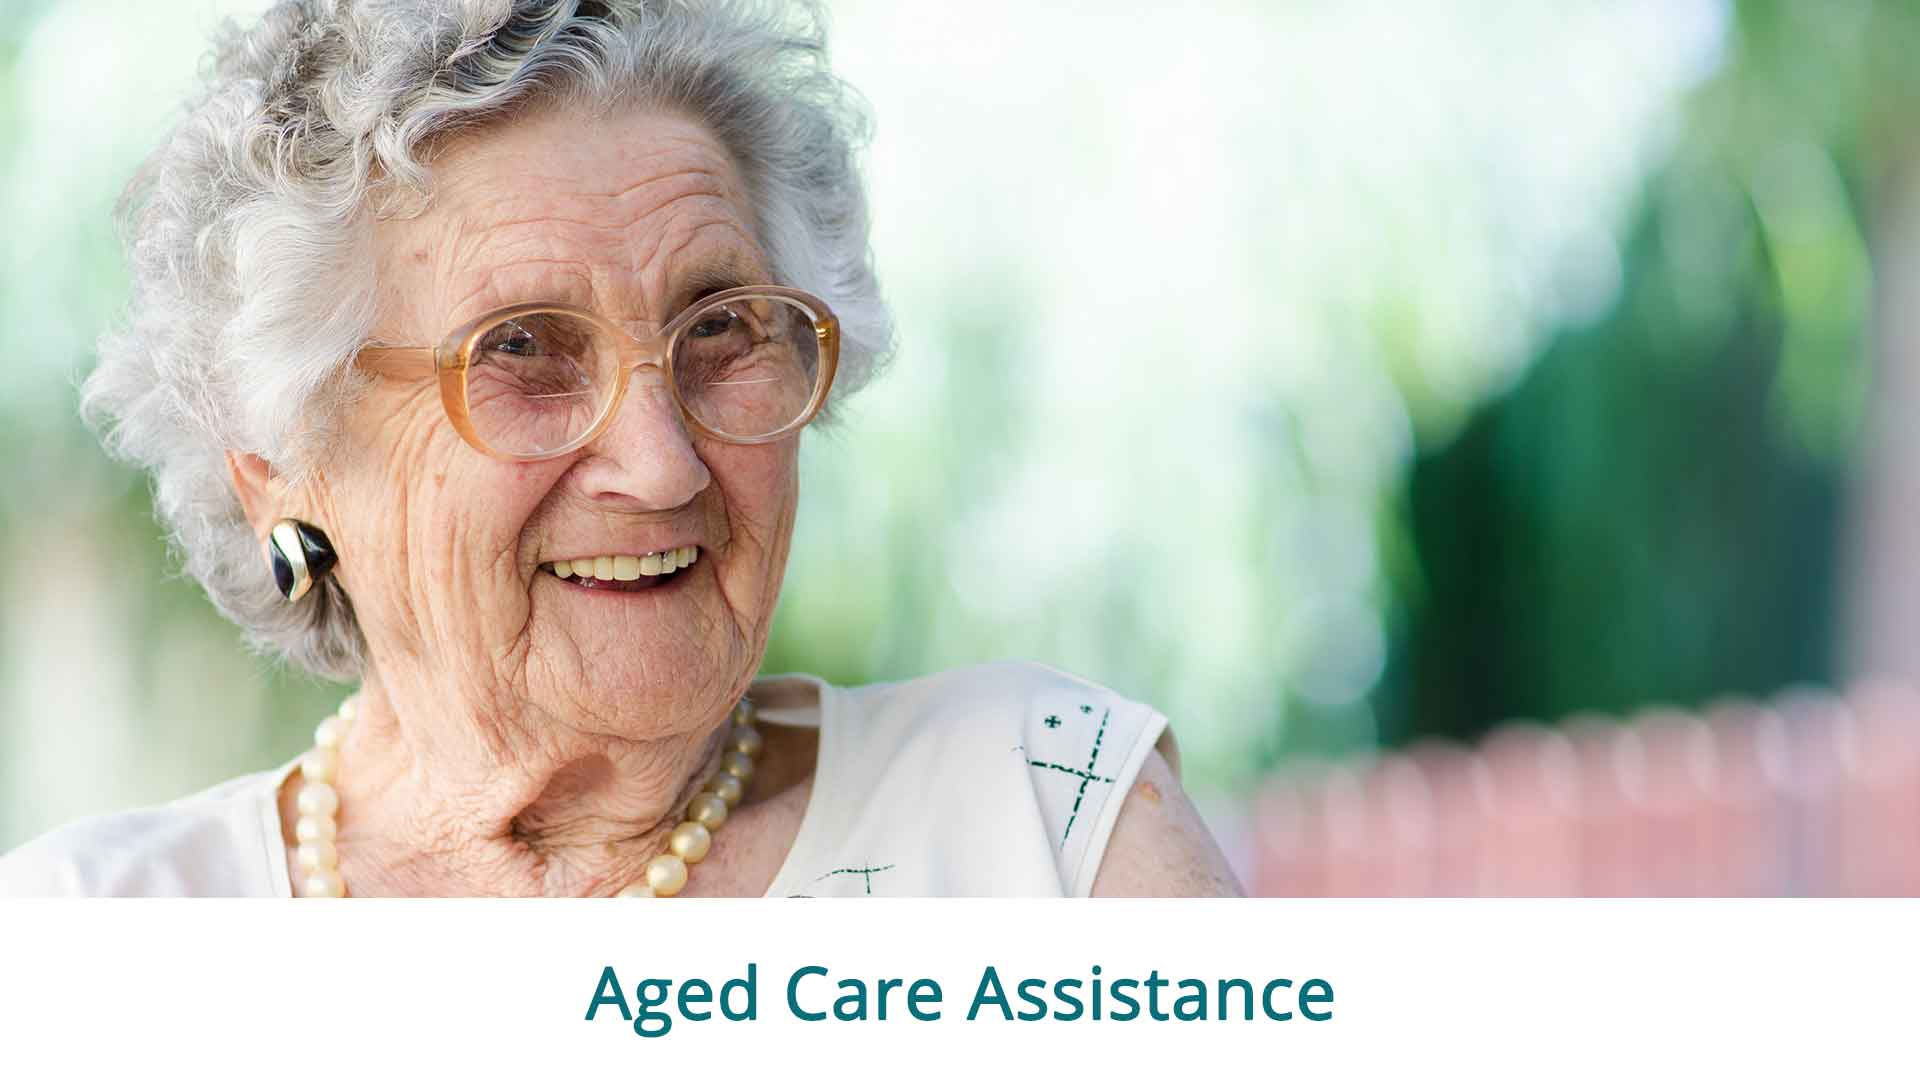 Murray-Mallee-Financial-Planning-Advice-6.0-Aged-Care-Assistance